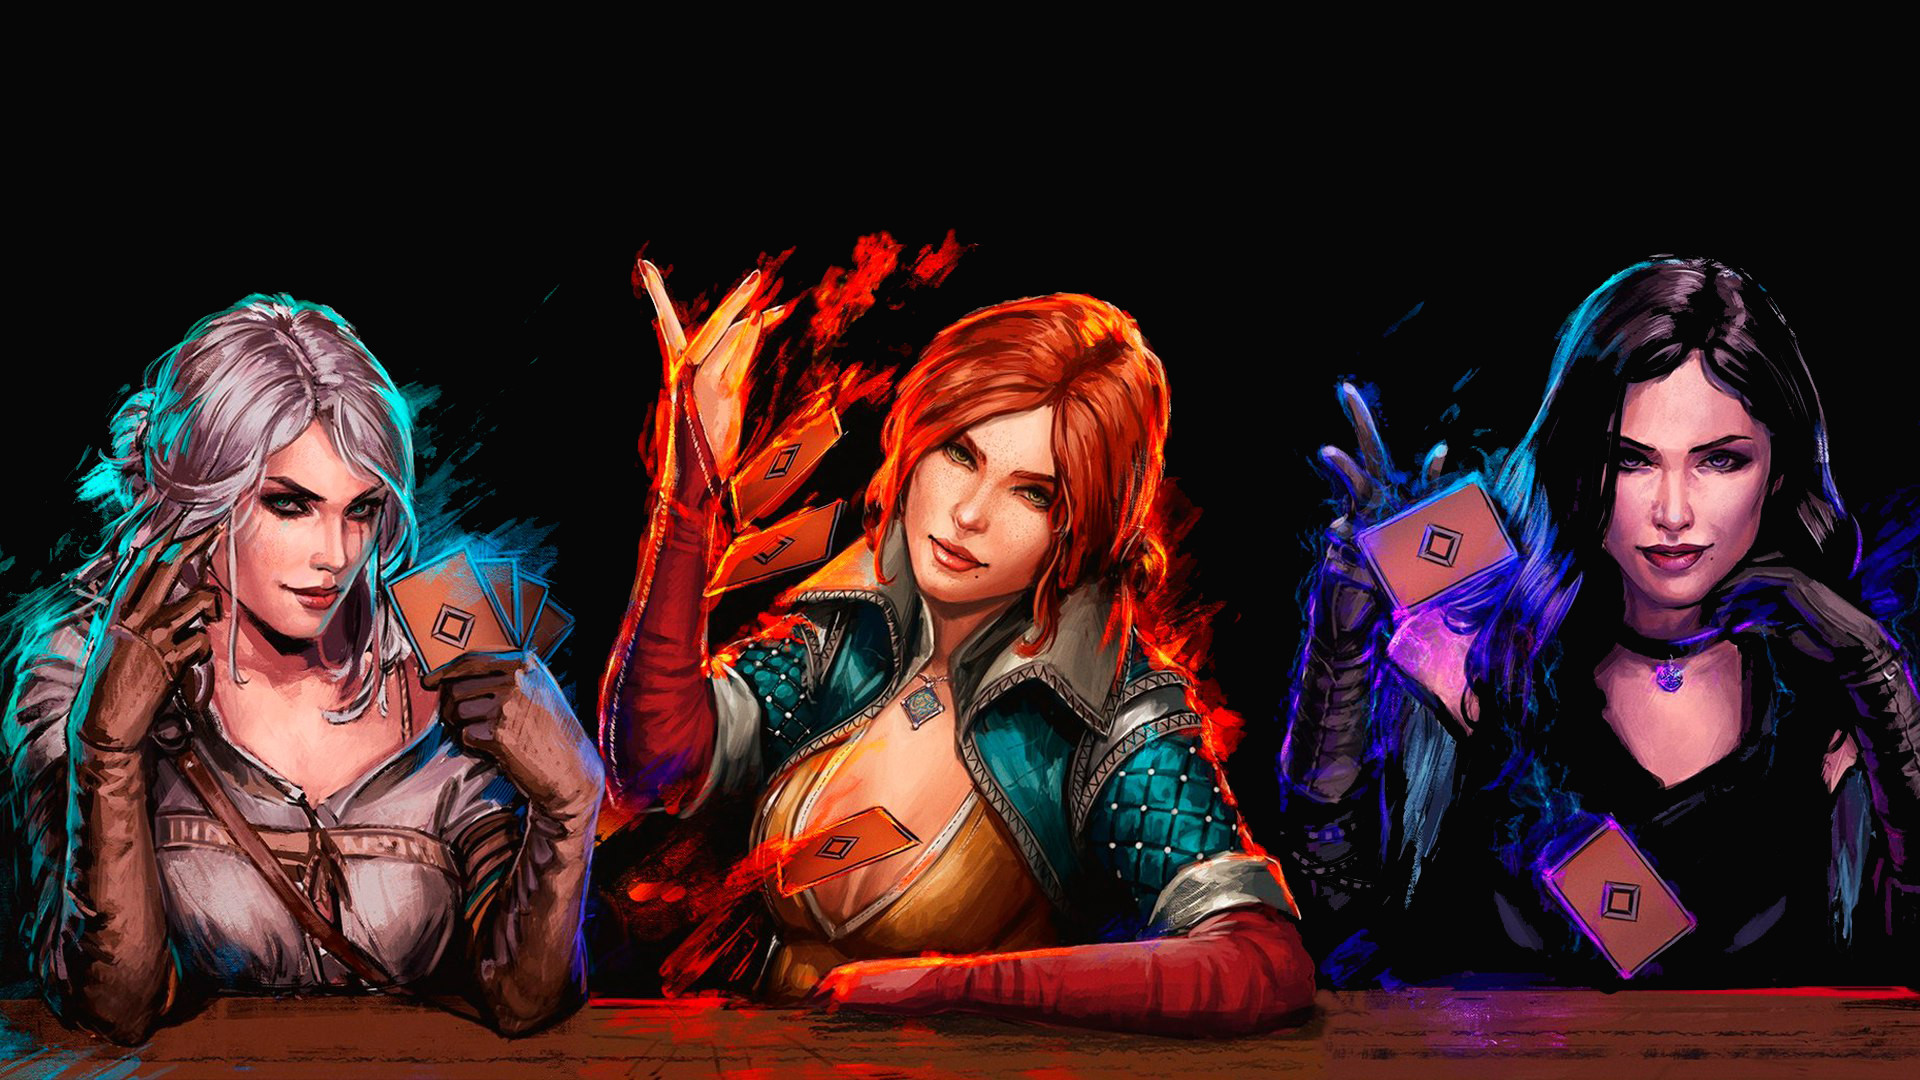 … Gwent: The Witcher Card Game Wallpaper by Frampos